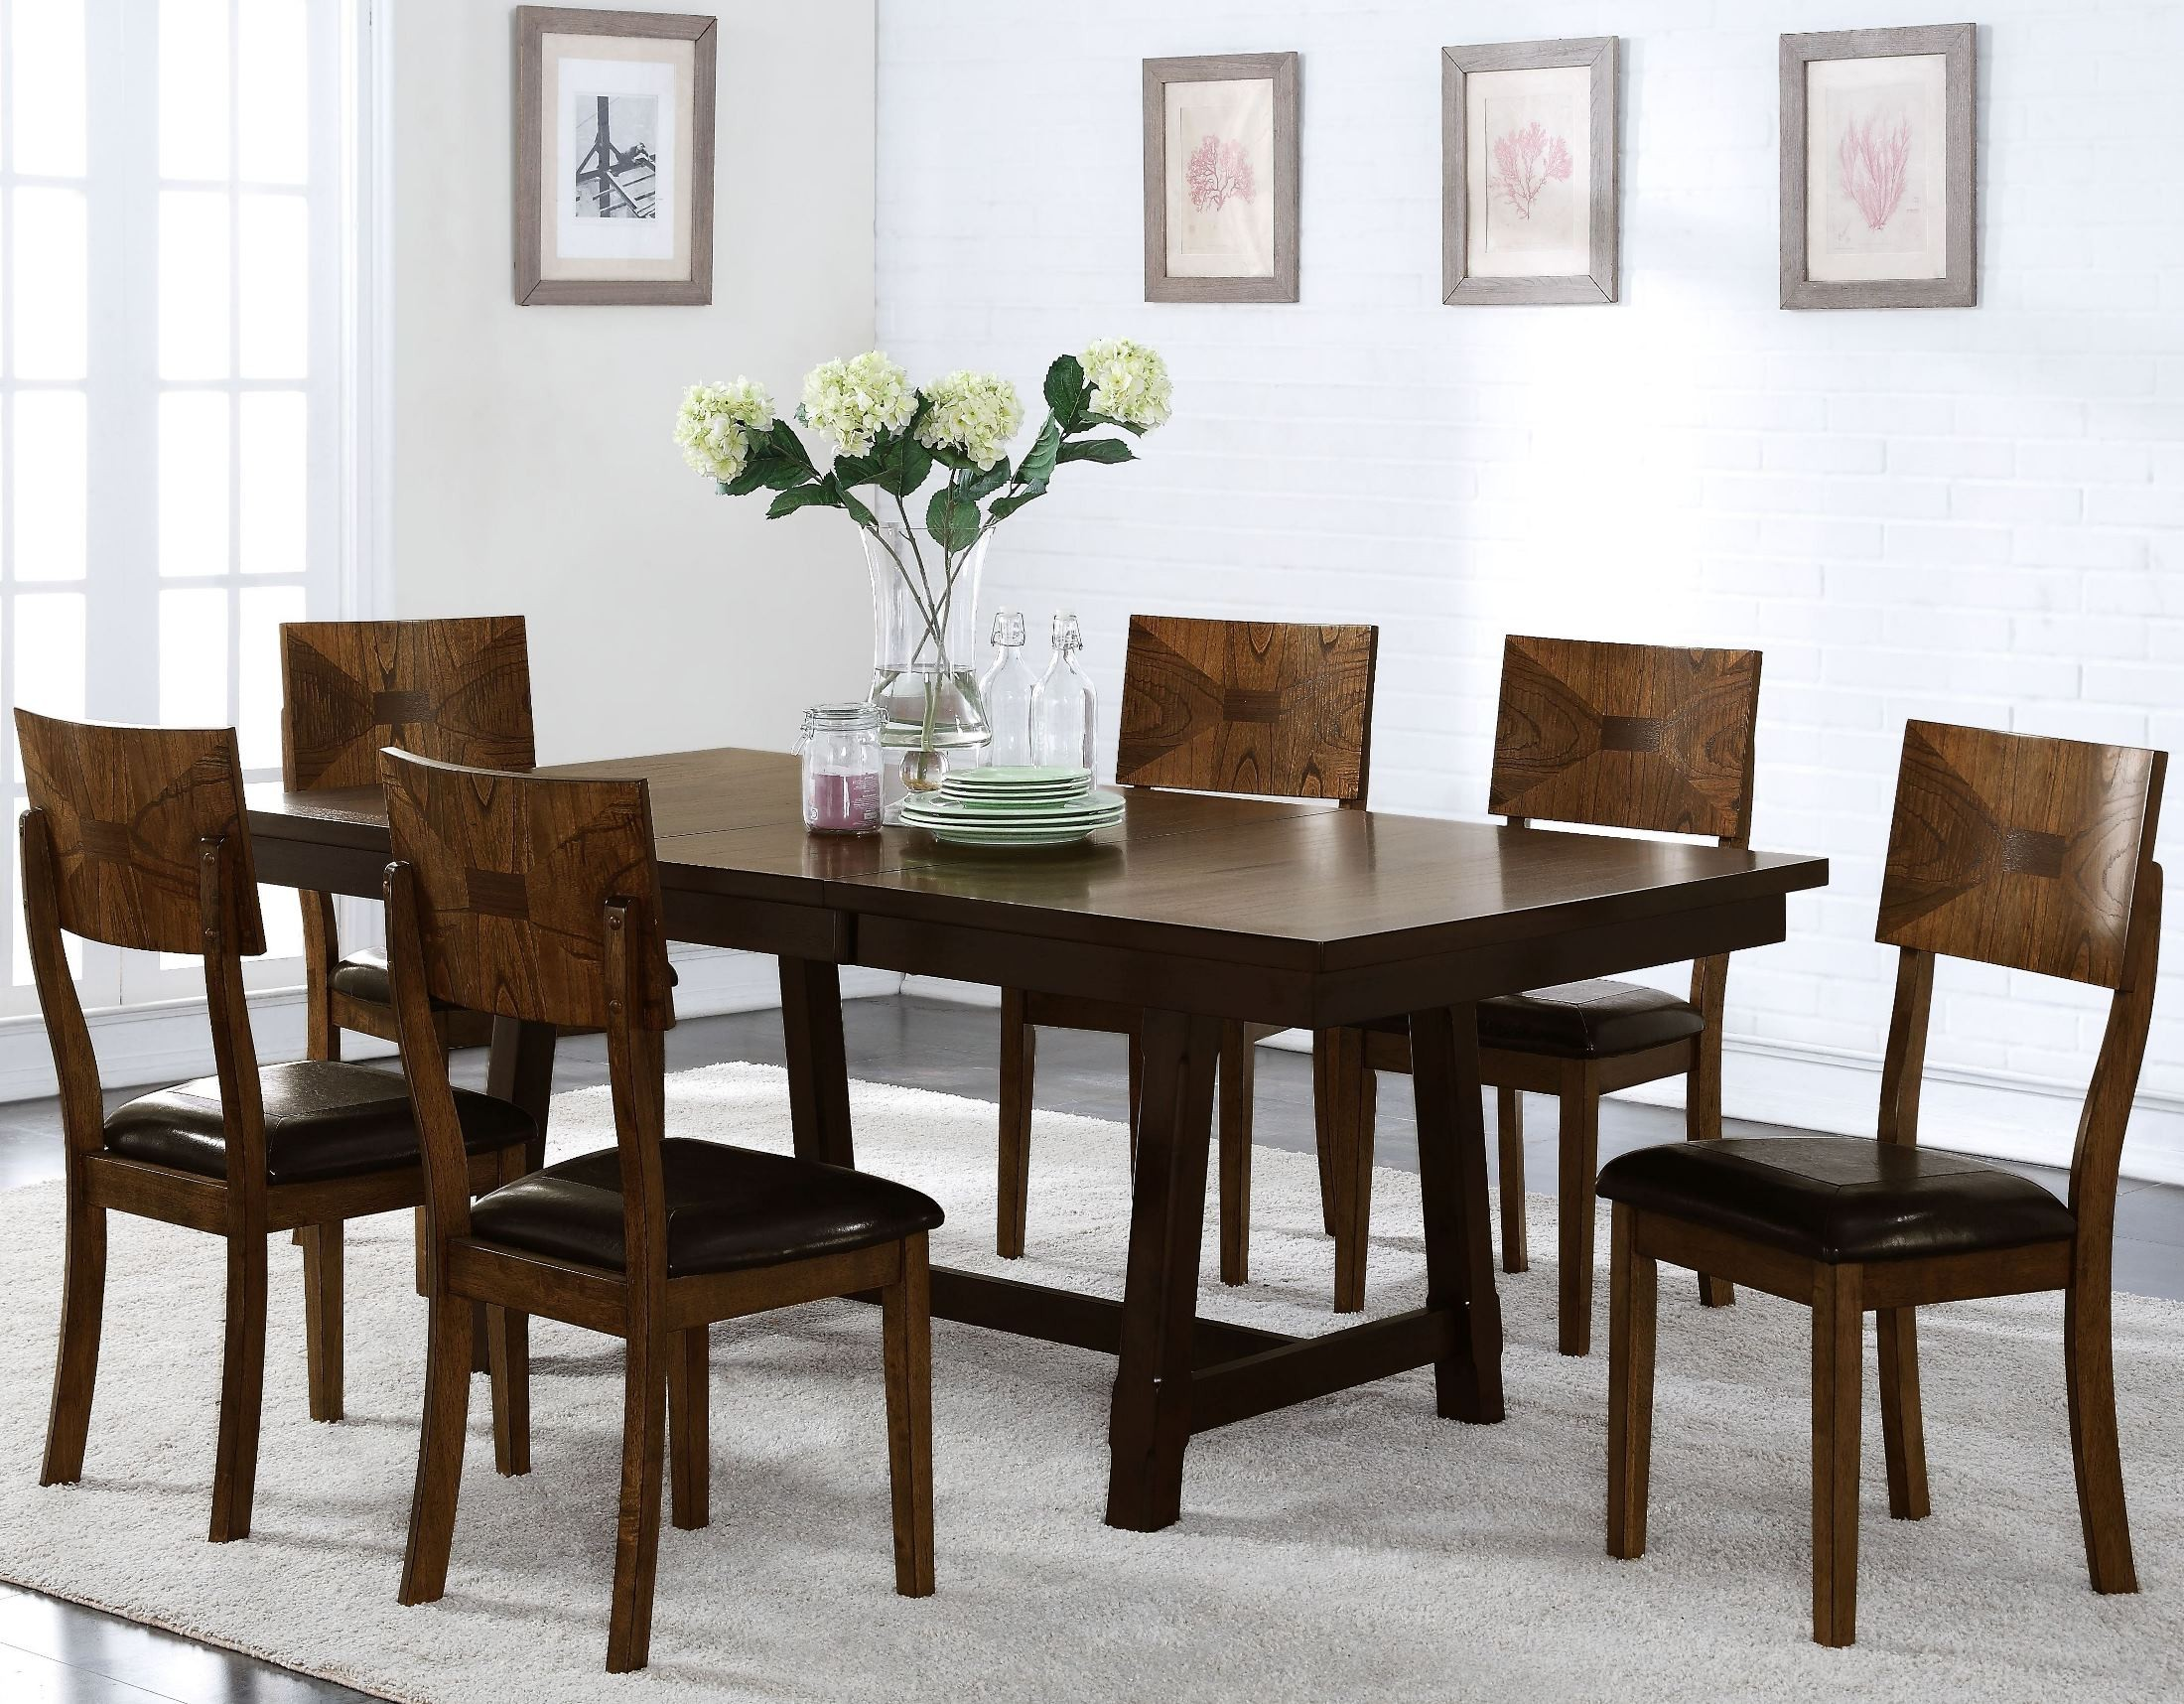 Gillian two tone dining room set d228 10 new classics for 2 tone dining room sets